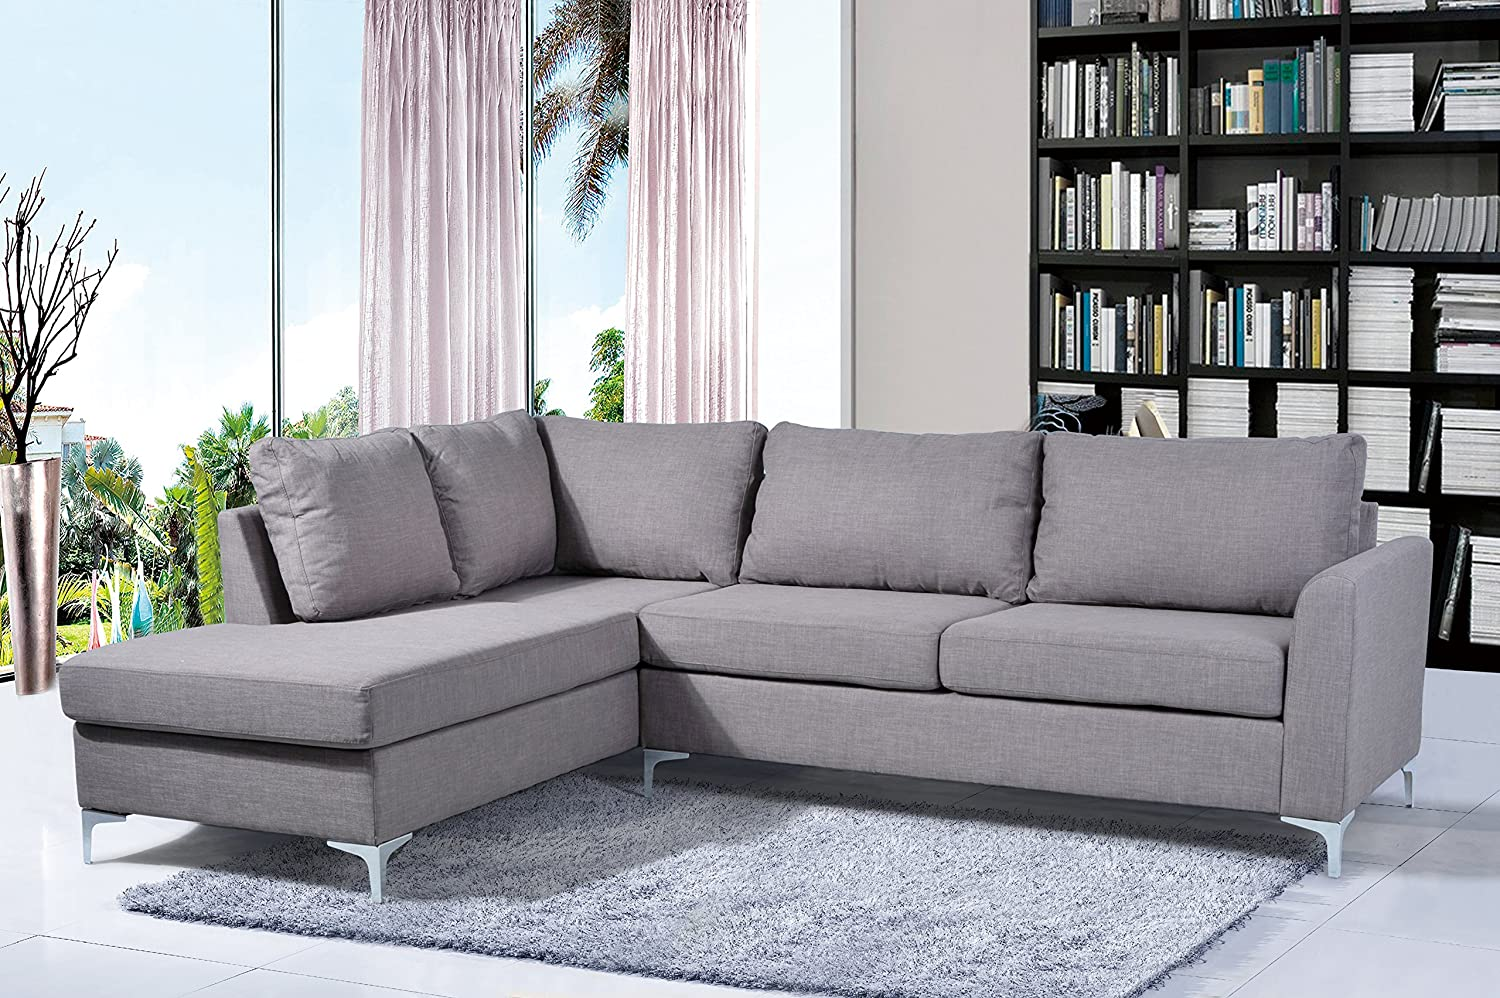 Groovy Nhi Express Landon Reversible Sectional Grey Ibusinesslaw Wood Chair Design Ideas Ibusinesslaworg